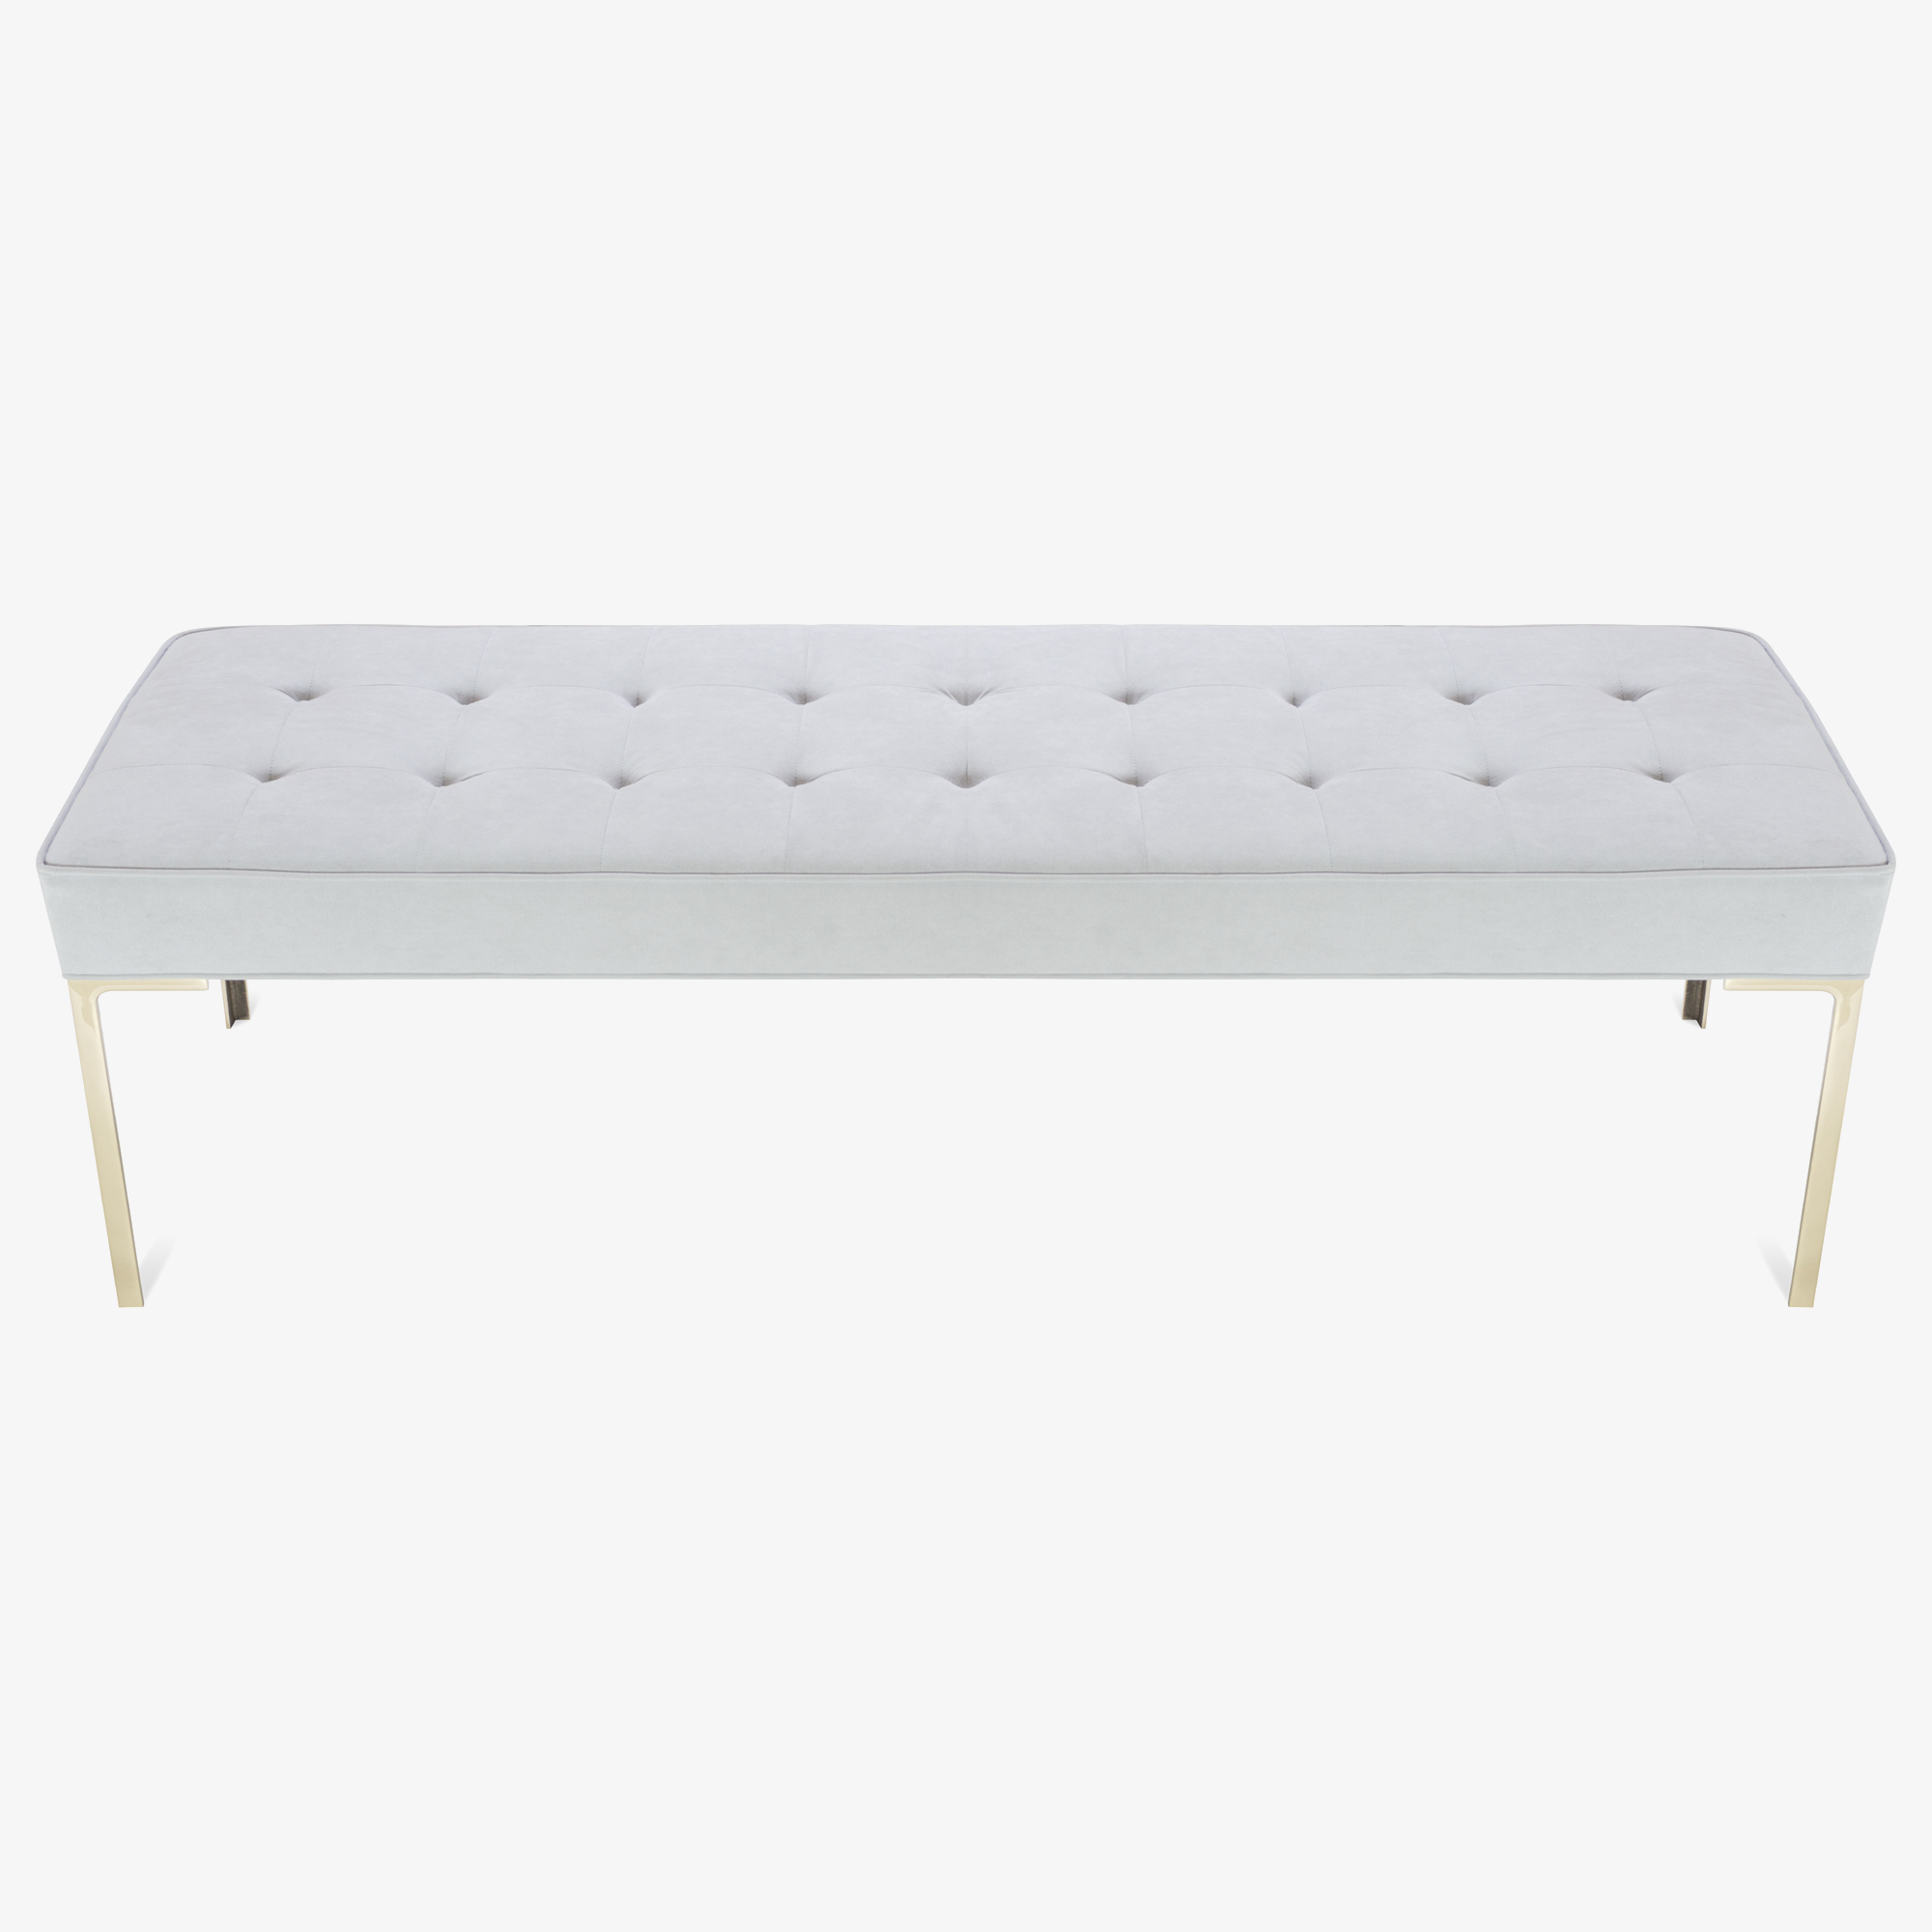 Astor 60%22 Tufted Brass Bench in Dove Luxe Suede (1 of 8)2.png